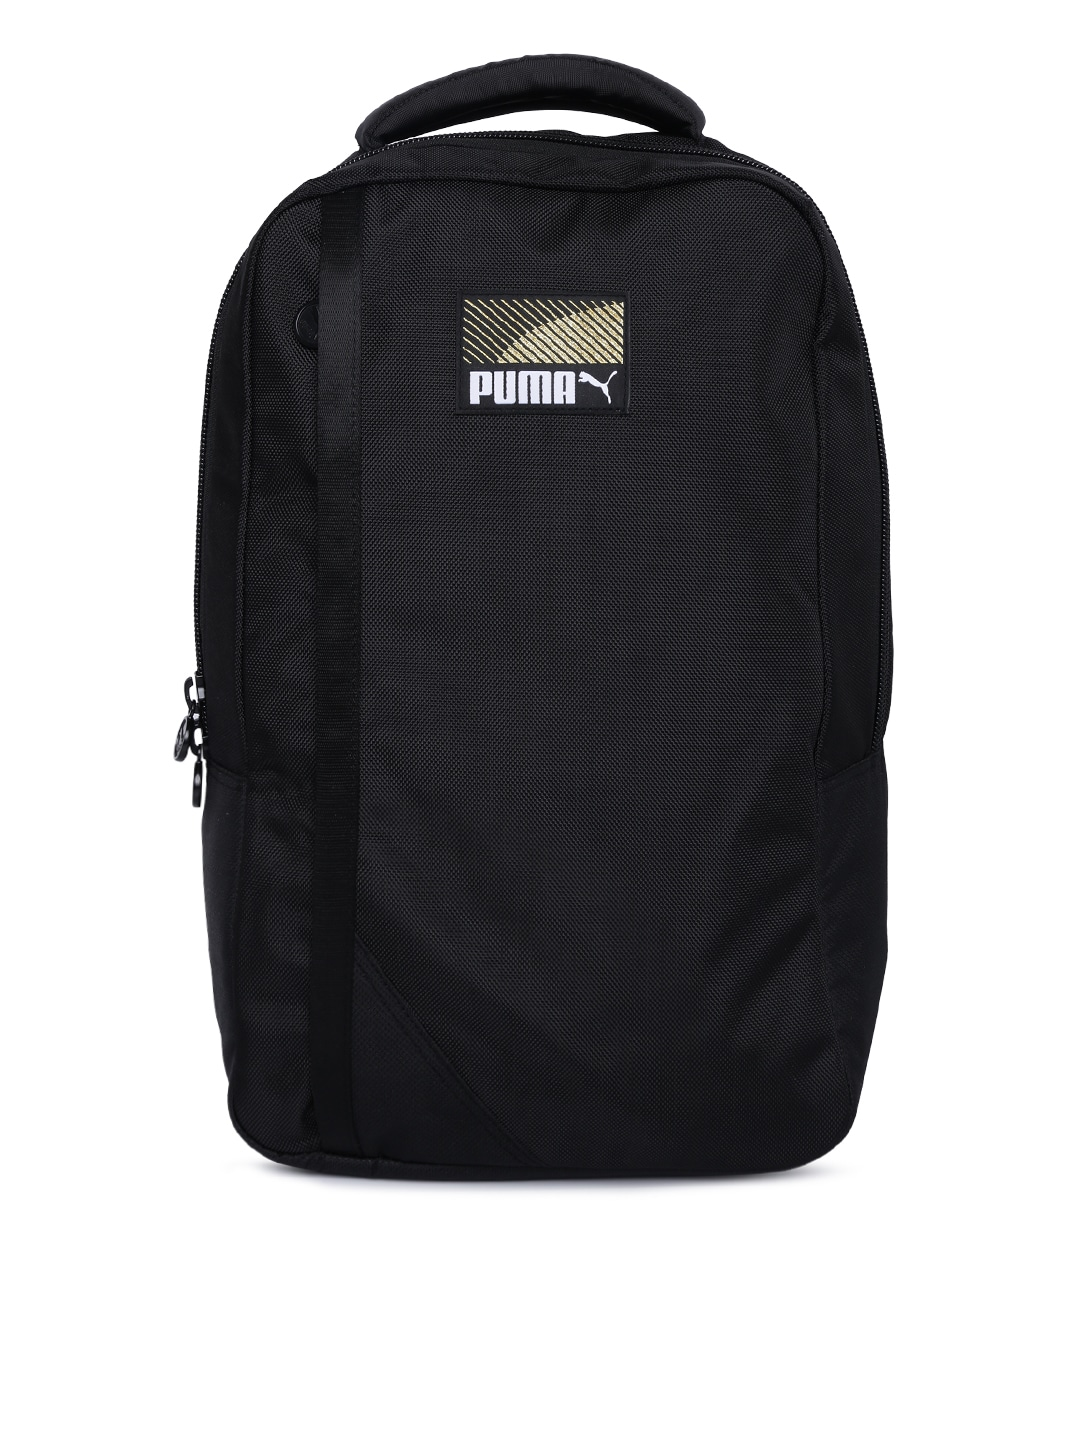 Black Puma Bags Backpacks - Buy Black Puma Bags Backpacks online in India 79486d5fe62ed